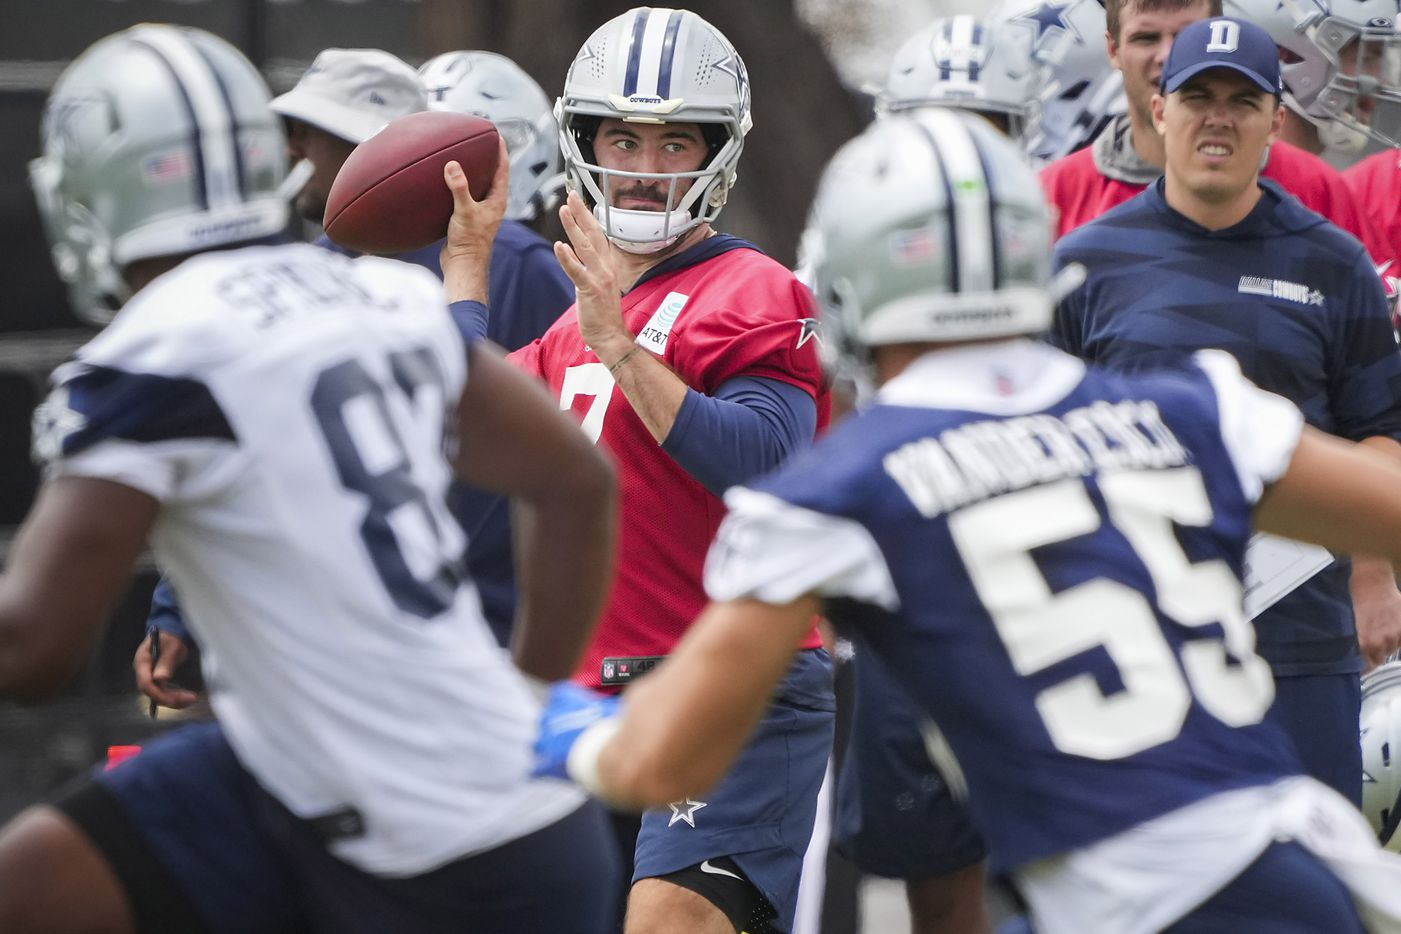 Dallas Cowboys quarterback Ben DiNucci (7) looks to pass as linebacker Leighton Vander Esch (55) covers wide receiver Brennan Eagles (83) while offensive coordinator Kellen Moore looks on during a practice at training camp on Sunday, July 25, 2021, in Oxnard, Calif.